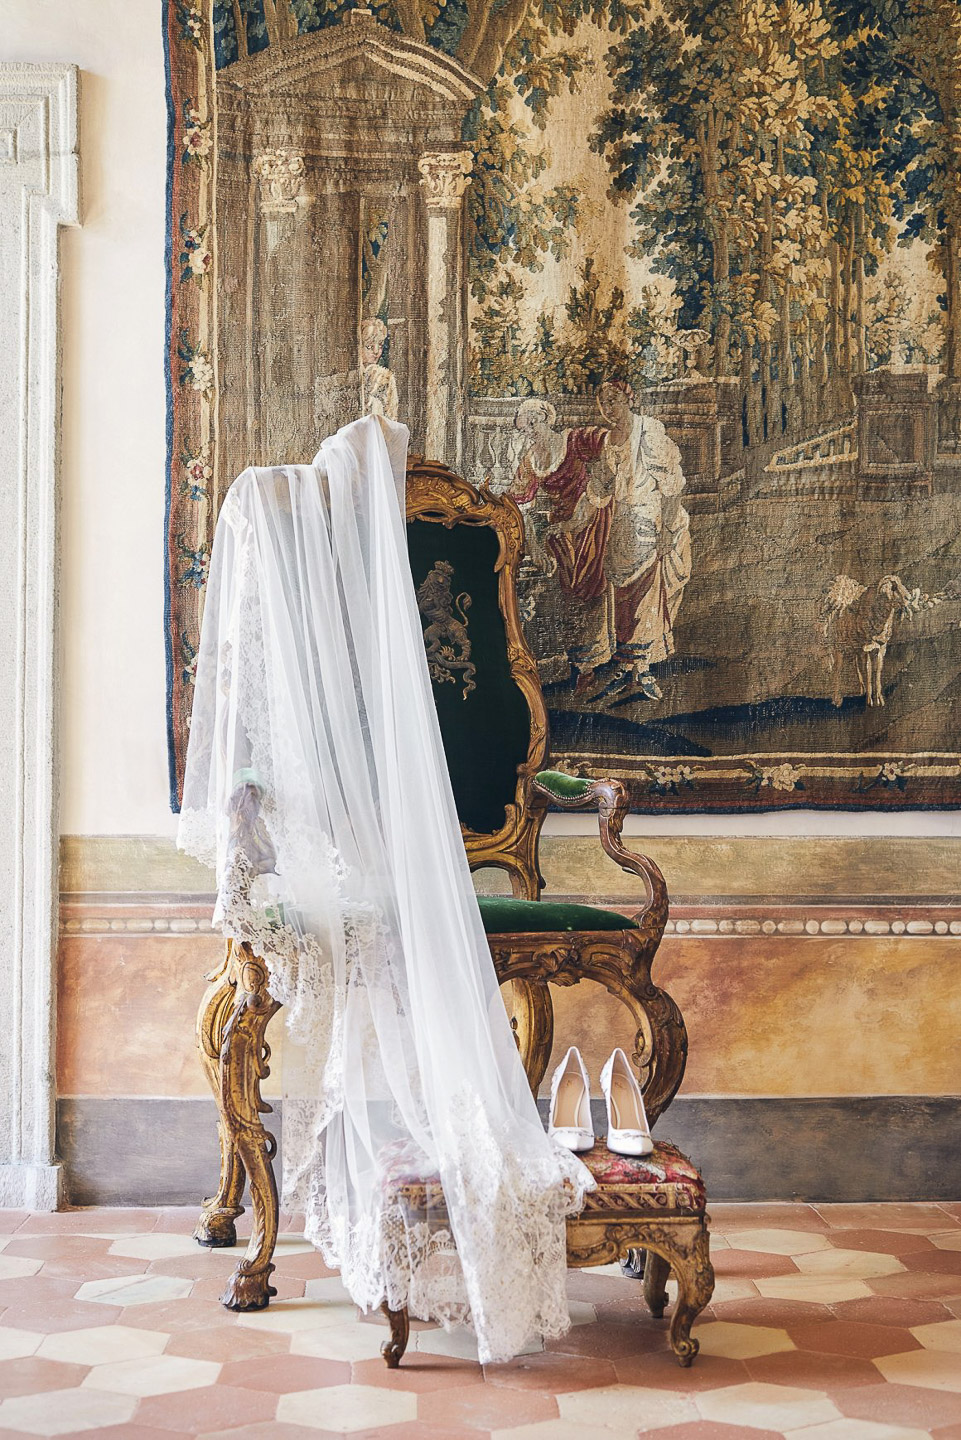 Villa Balbiano luxury property Lake Como Milan Italy exclusive private rent rental destination weddings events cememony elopement engagement antique Italian throne in the gallery first floor